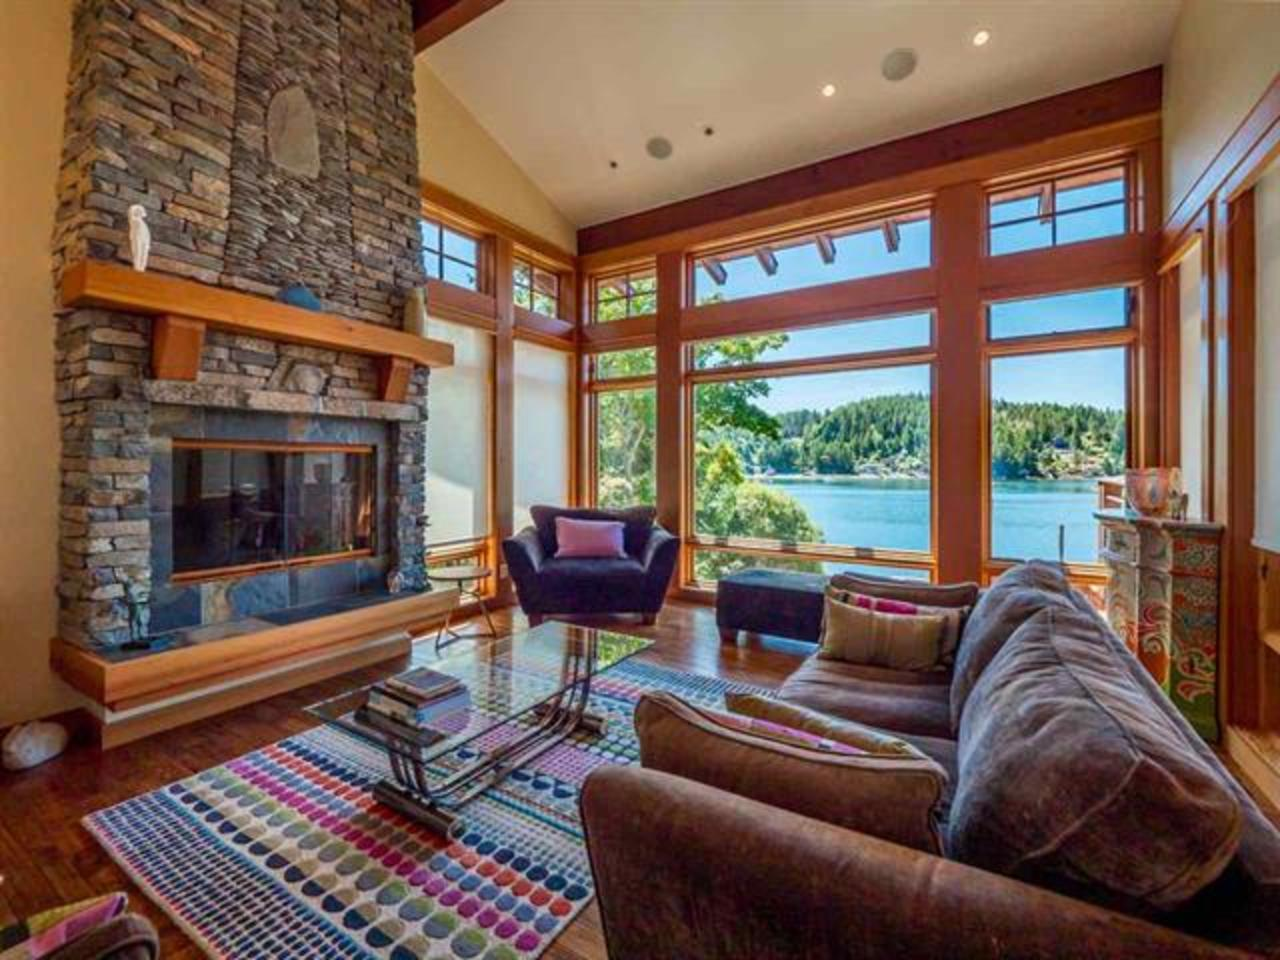 262403588-5 at 4590 Pinehaven Place, Pender Harbour Egmont, Sunshine Coast